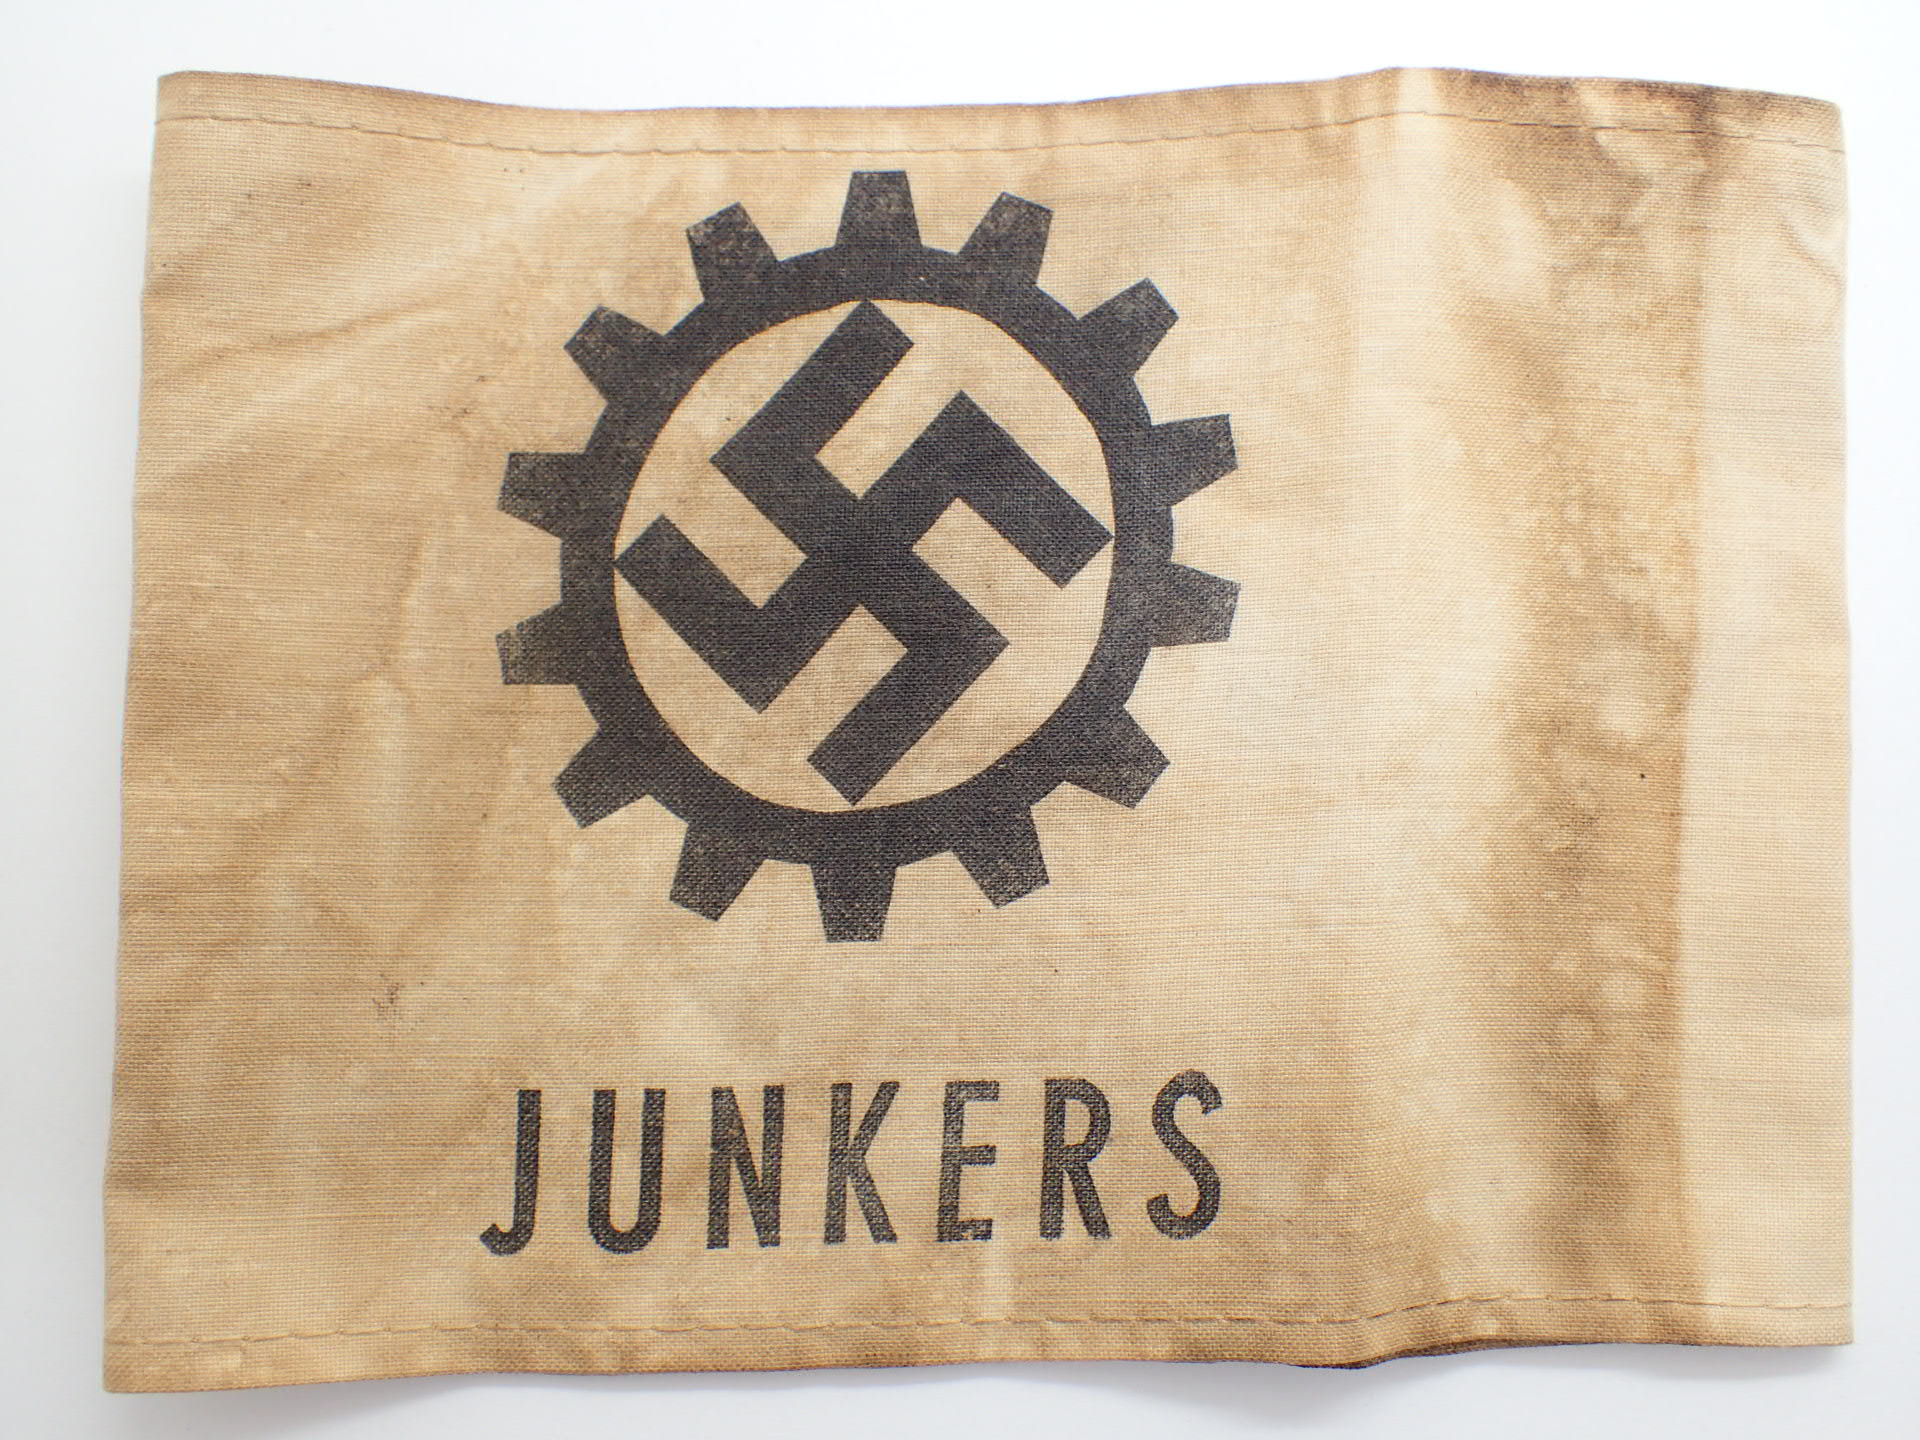 Lot 108 - WWII German Junkers workers armband